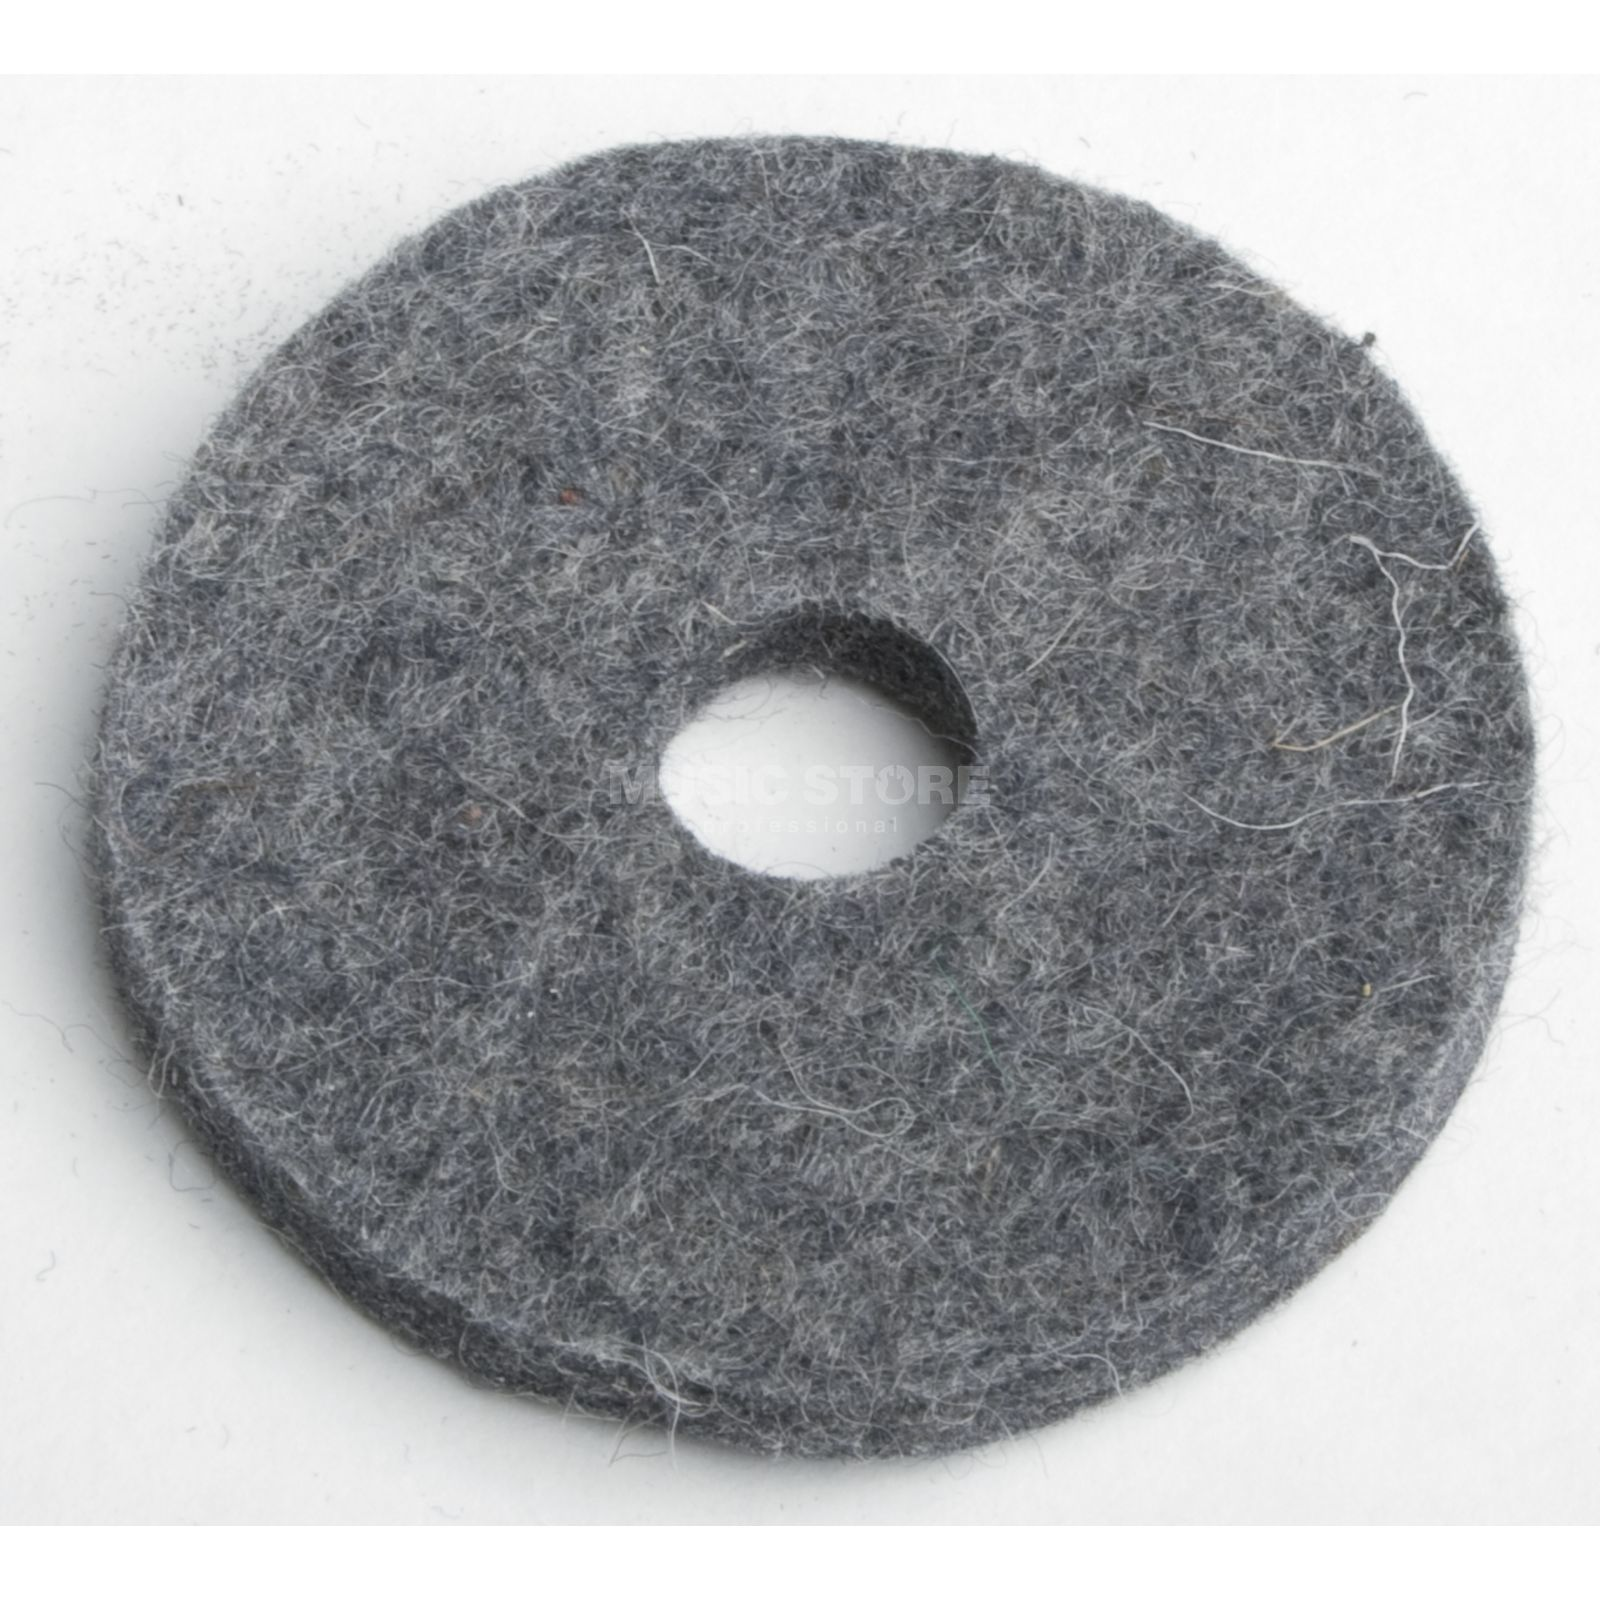 MUSIC STORE Cymbal felts, 50x10mm, f. hihat bottom, 2 pcs Produktbillede